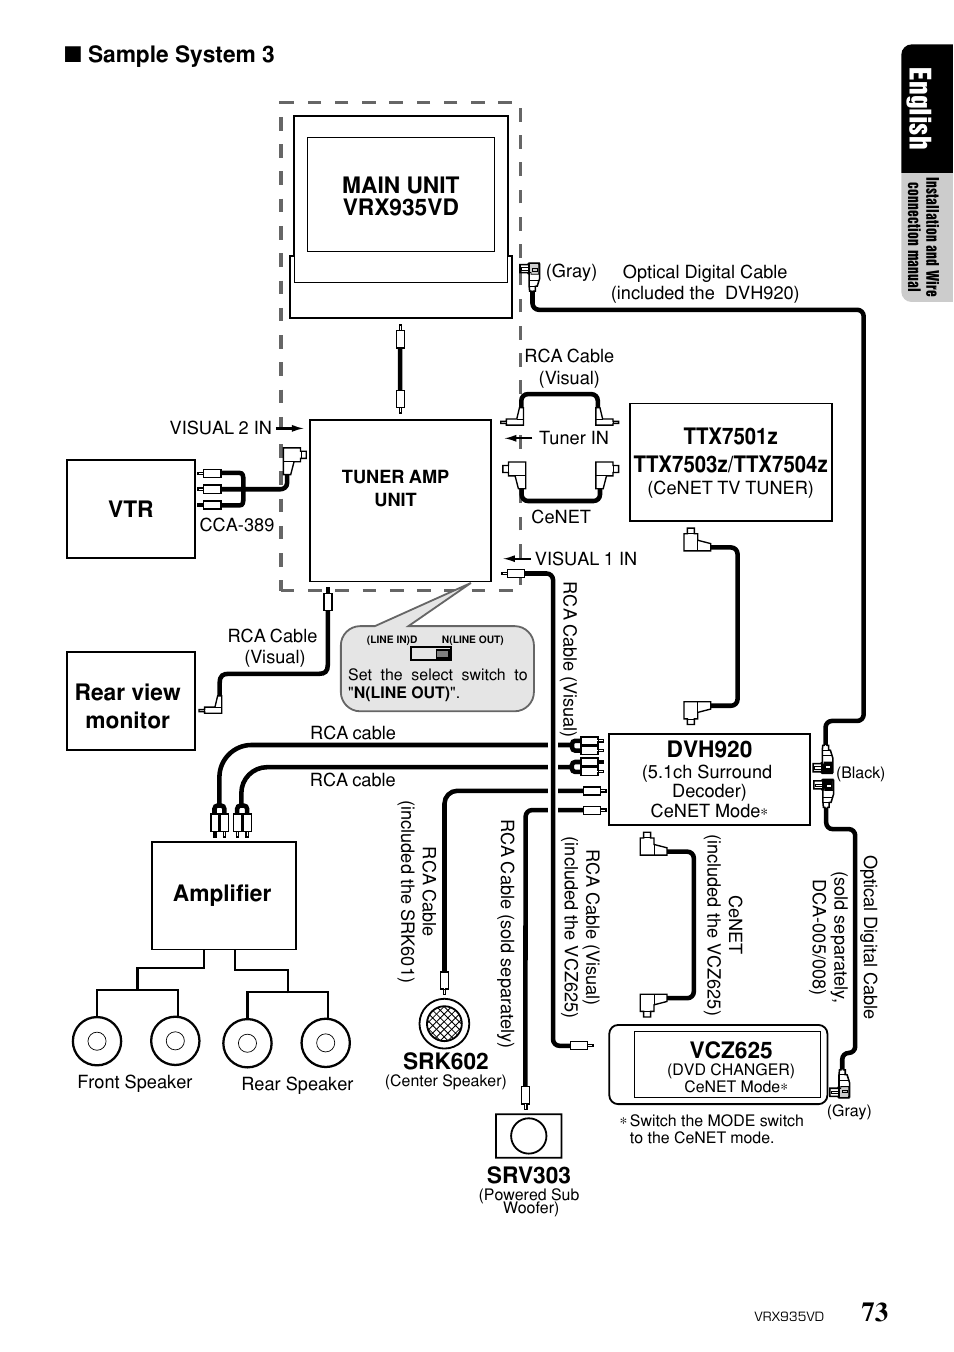 Vrx935vd Clarion Wiring Diagram And Schematics Car Audio Rca 73 English Sample System 3 Dvh920 Proaudio Vrx 935vd User Manual Page 69